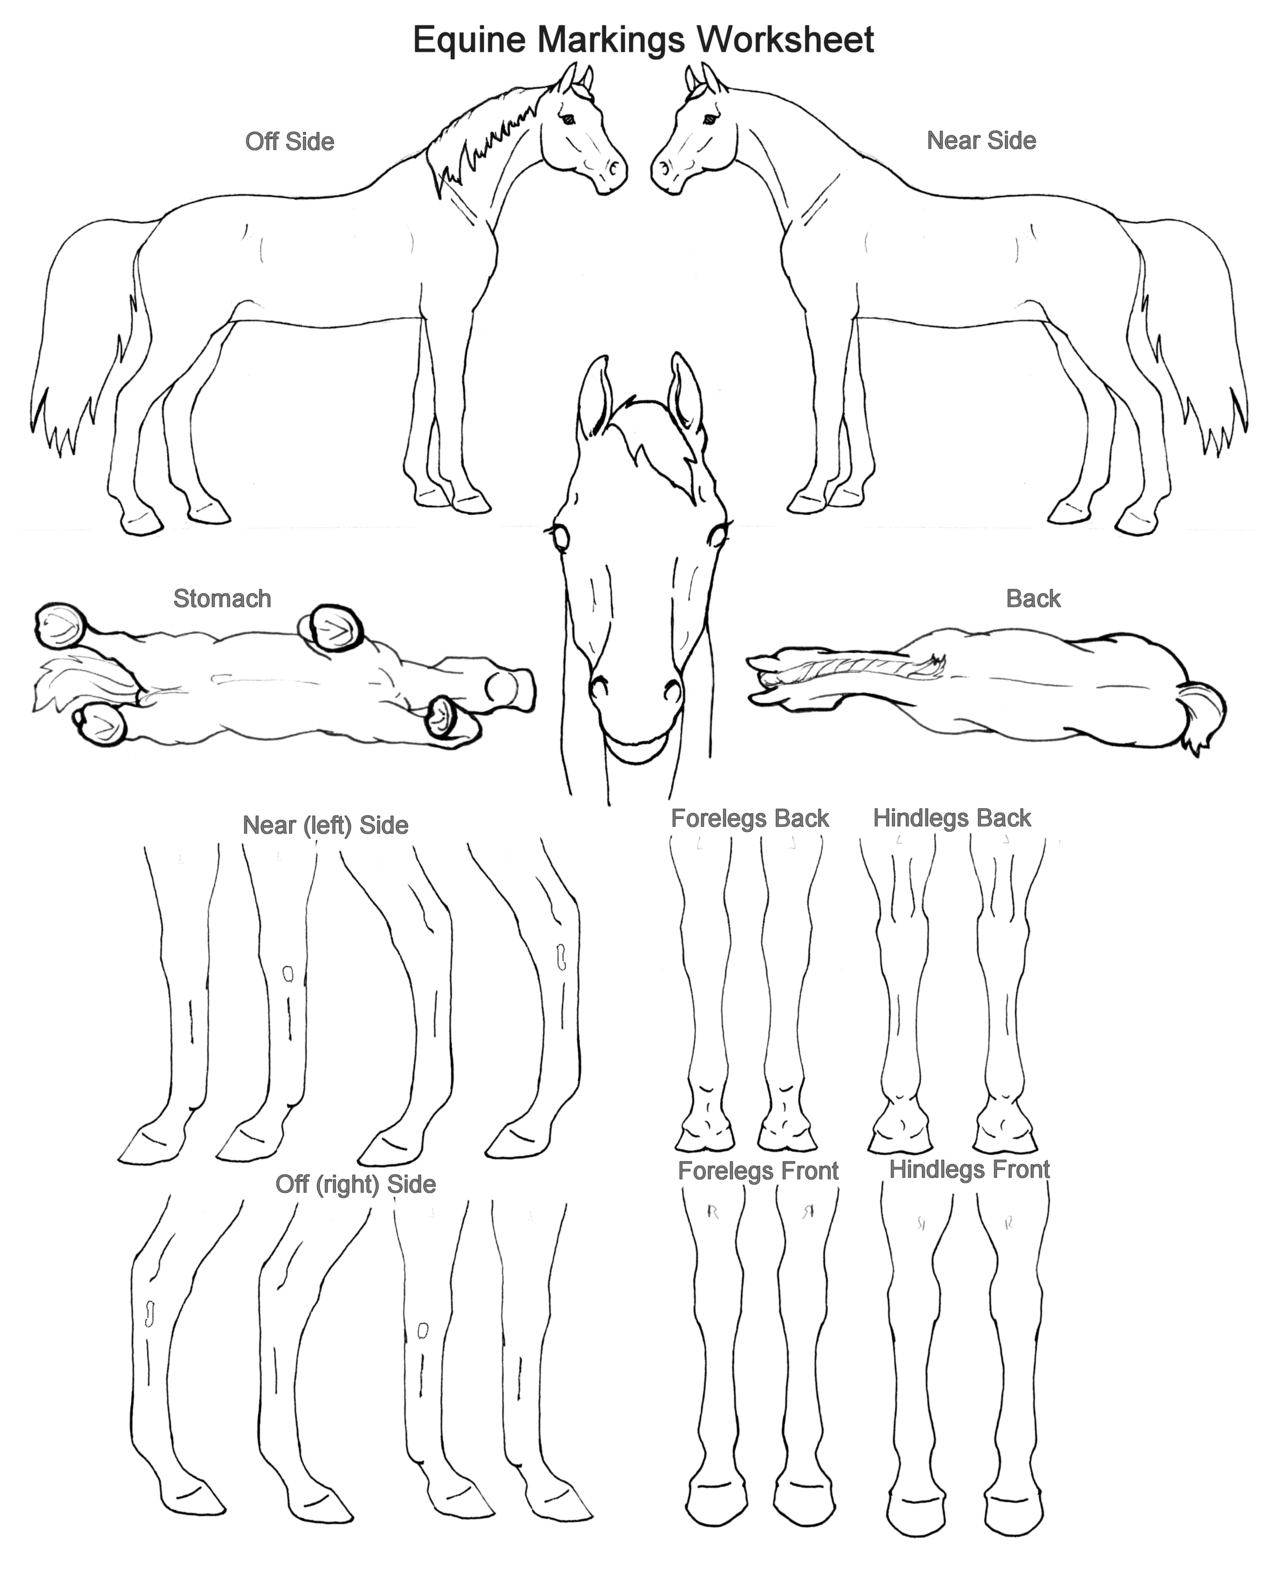 Worksheets Horse Anatomy Worksheet equine markings worksheet from breed registration form horsemastership glenlyon pony club